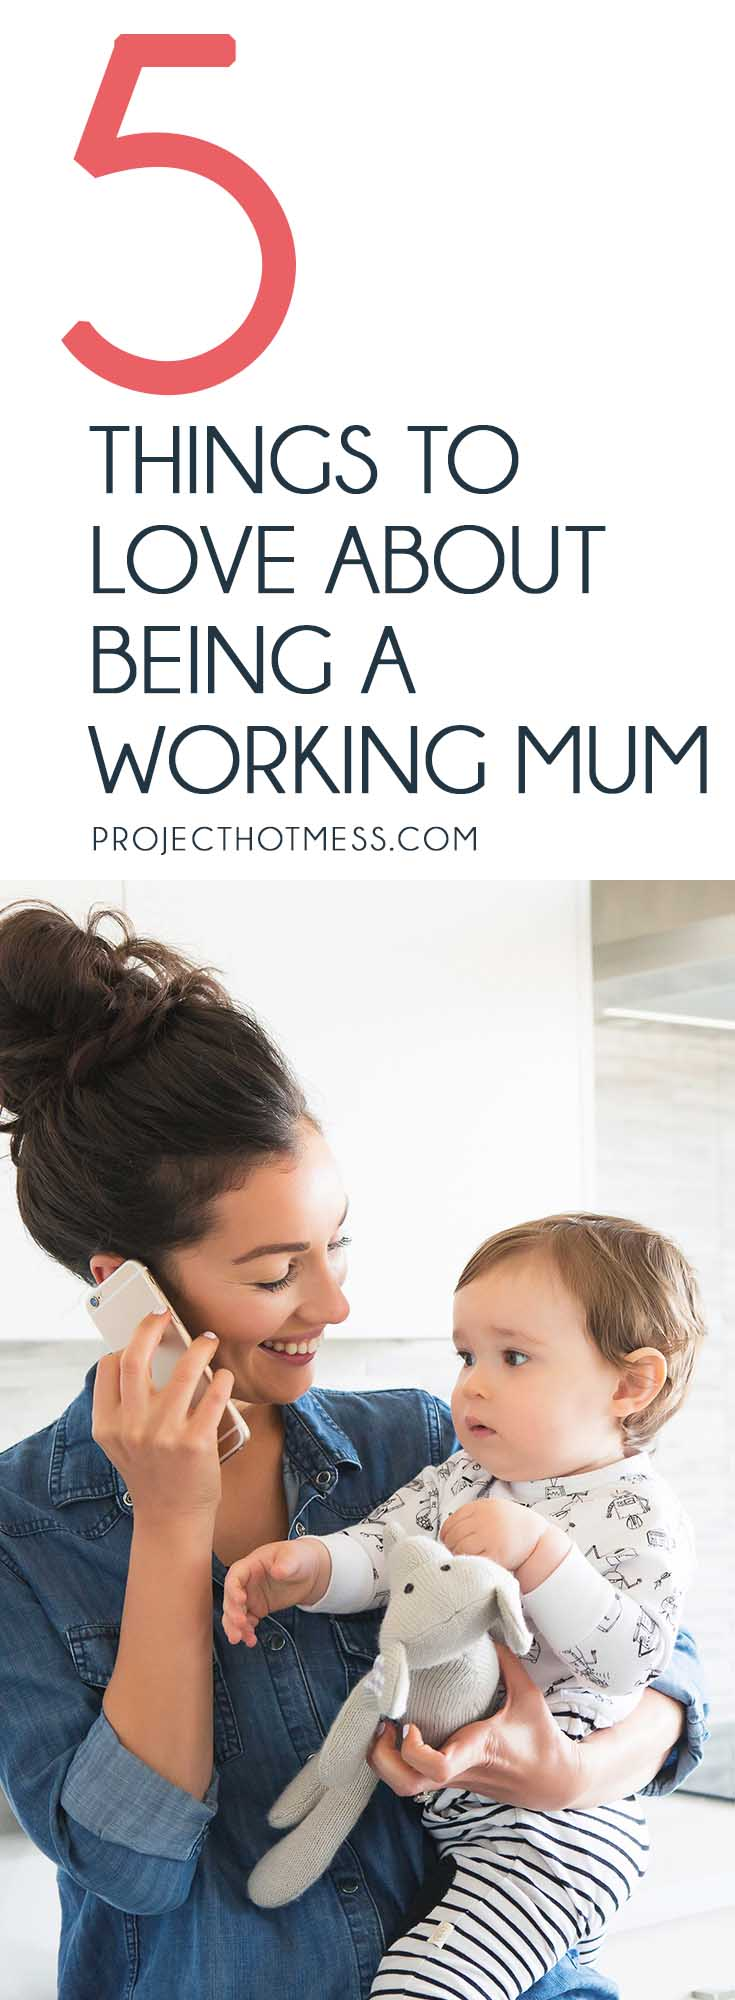 There's no doubt about it, being a working mum is tough. (Heck just being a mum is tough). But there are some things I love about it that make it worthwhile.